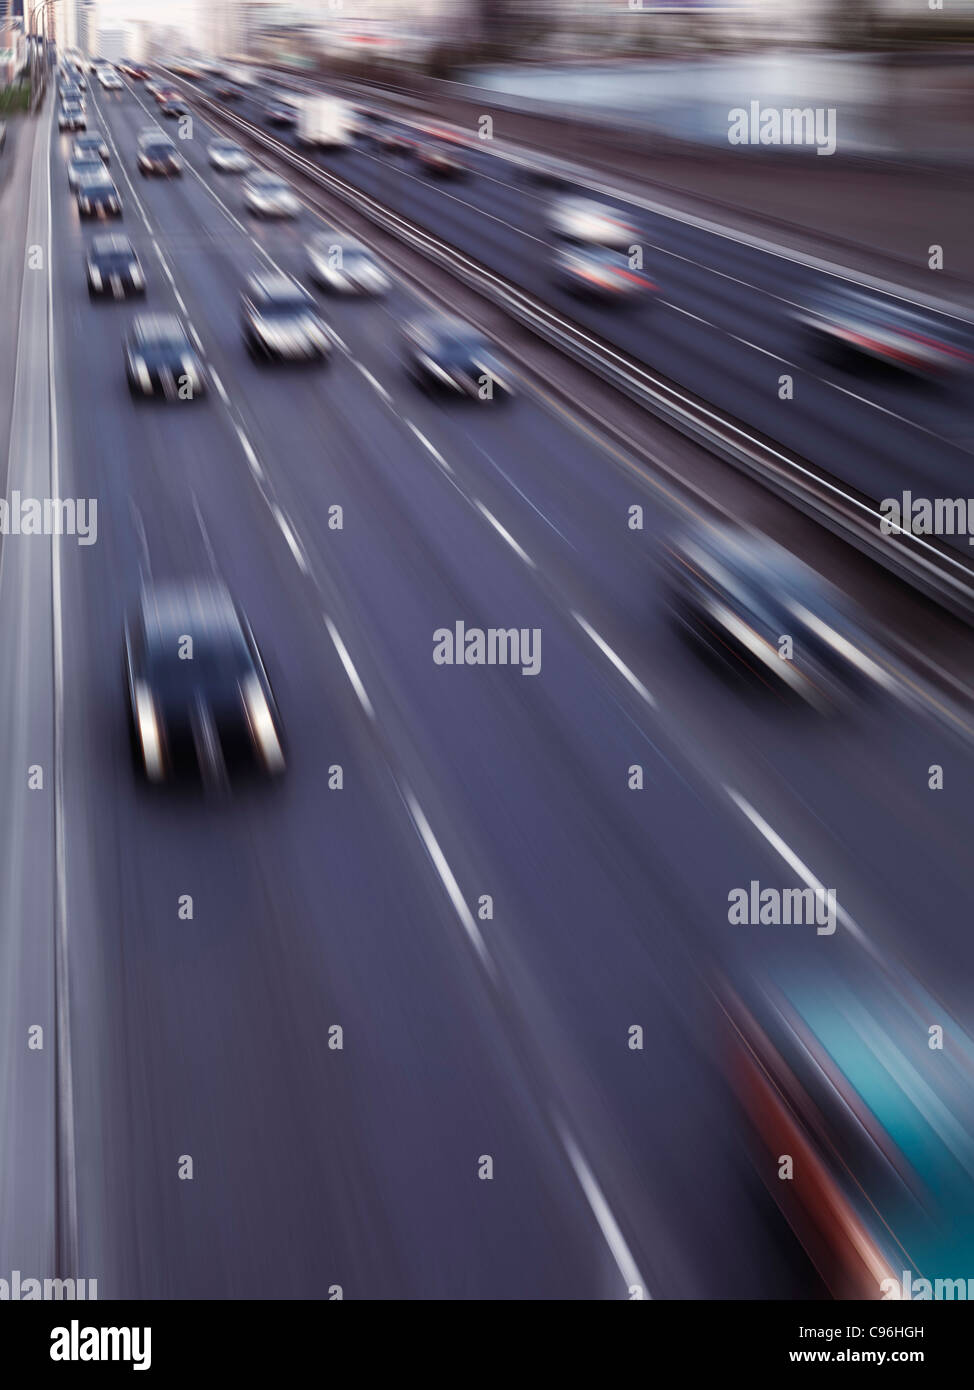 Dynamic photo of highway traffic in motion. Toronto Gardiner Expressway. Ontario, Canada. - Stock Image